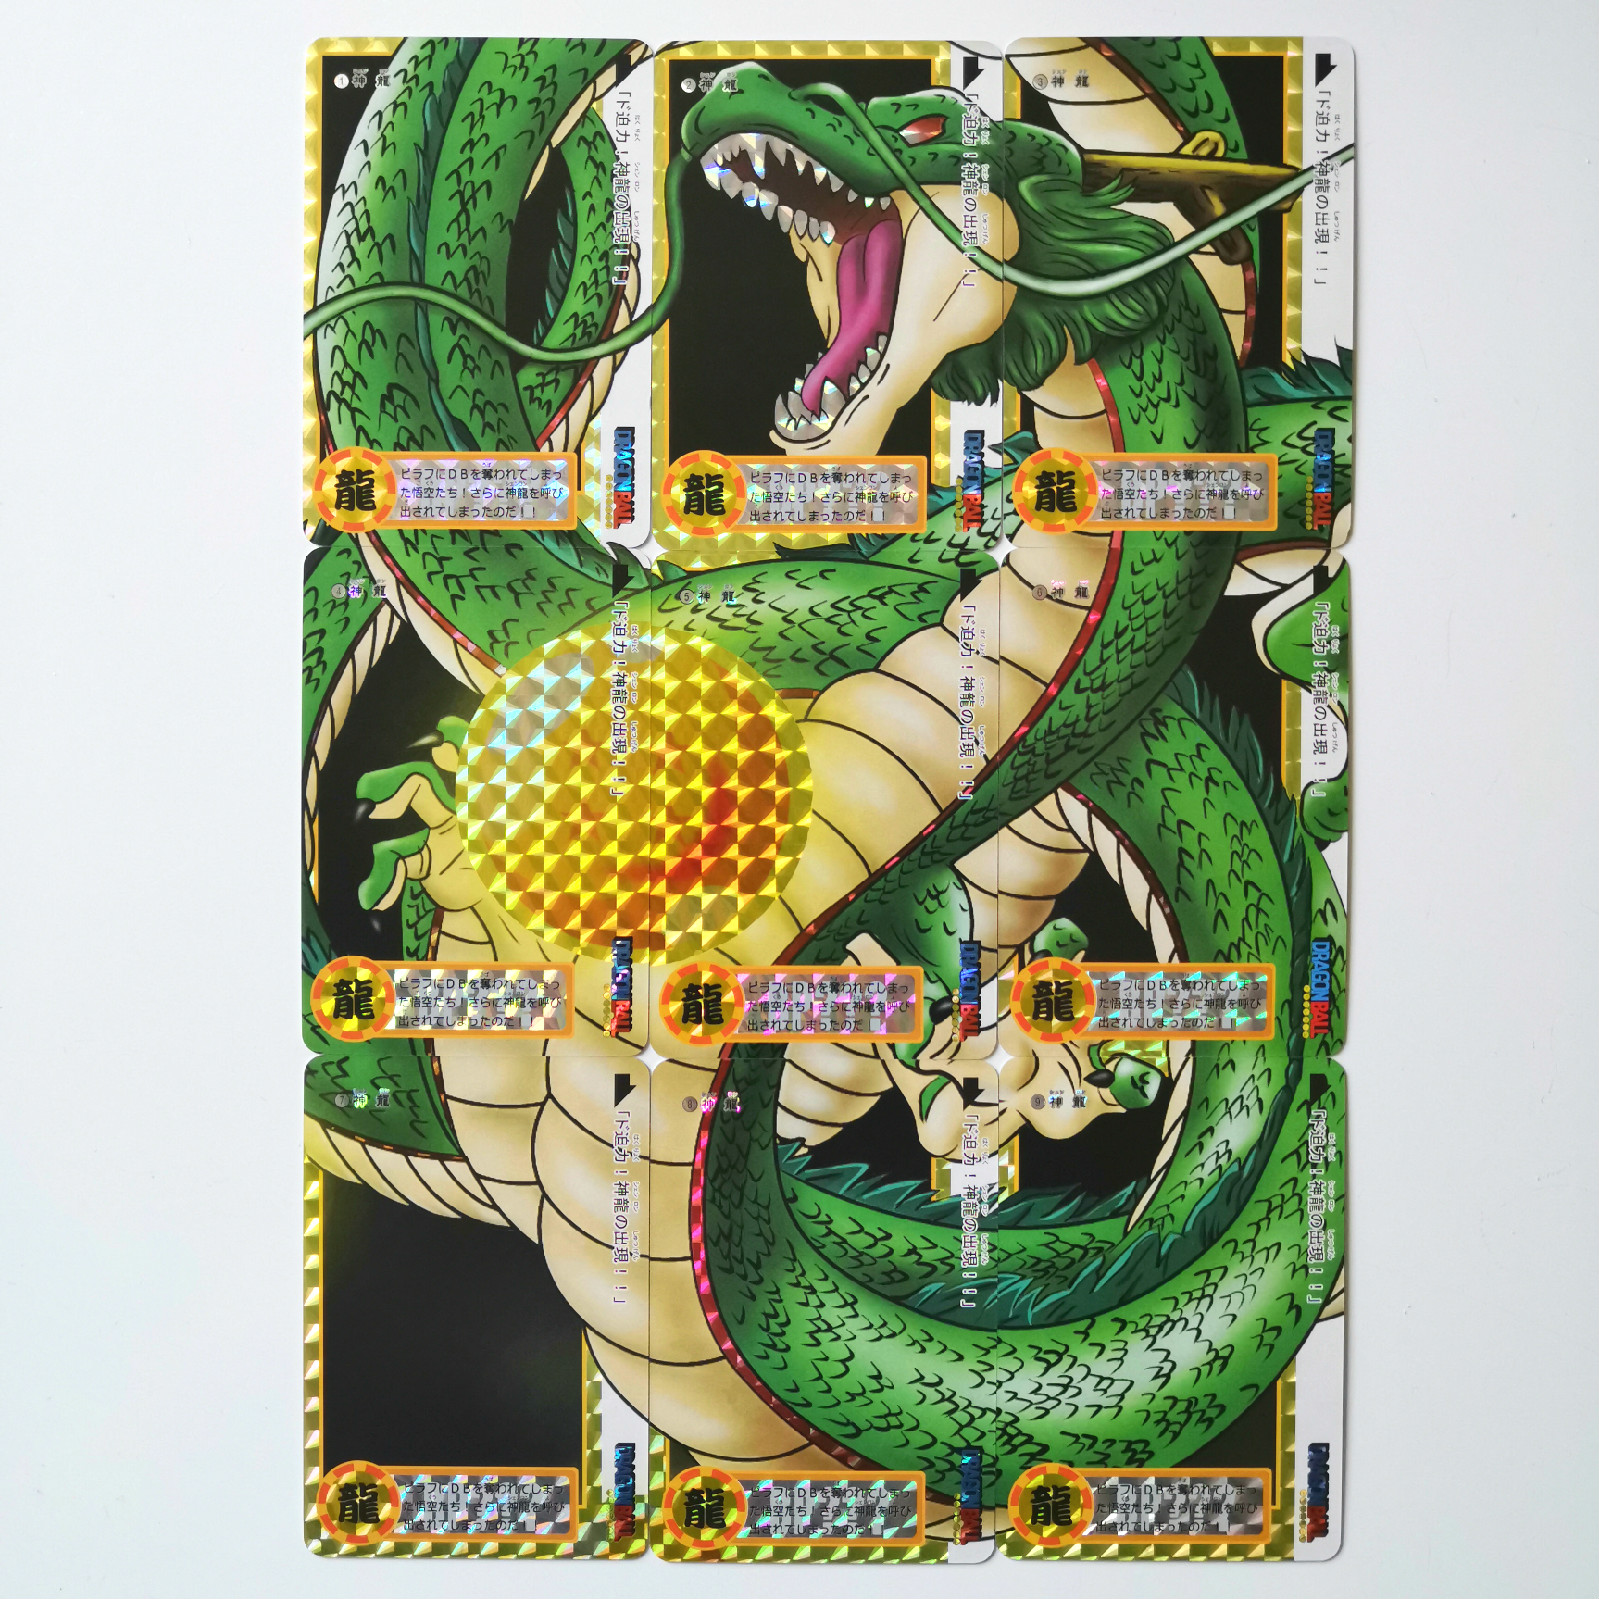 9pcs Shenron 9 In 1 Super Dragon Ball Z Heroes Battle Card Ultra Instinct Goku Vegeta Game Collection Cards